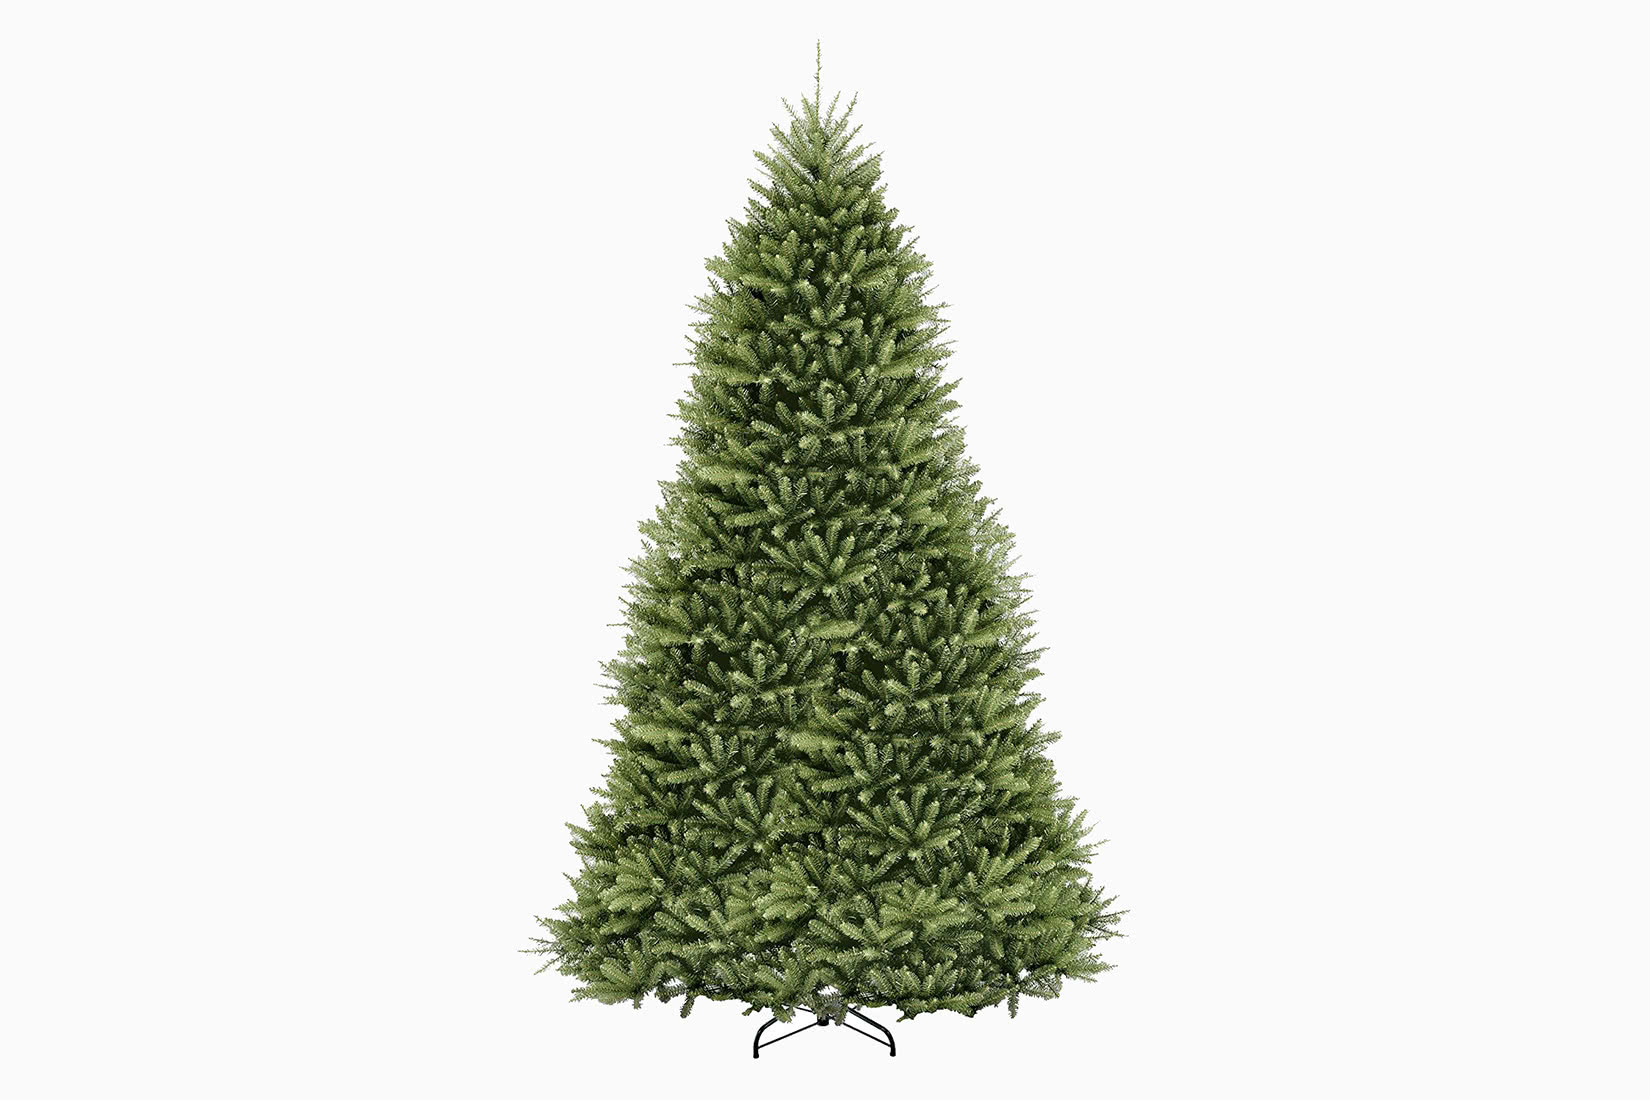 best artificial Christmas tree 12 ft national tree company review - Luxe Digital